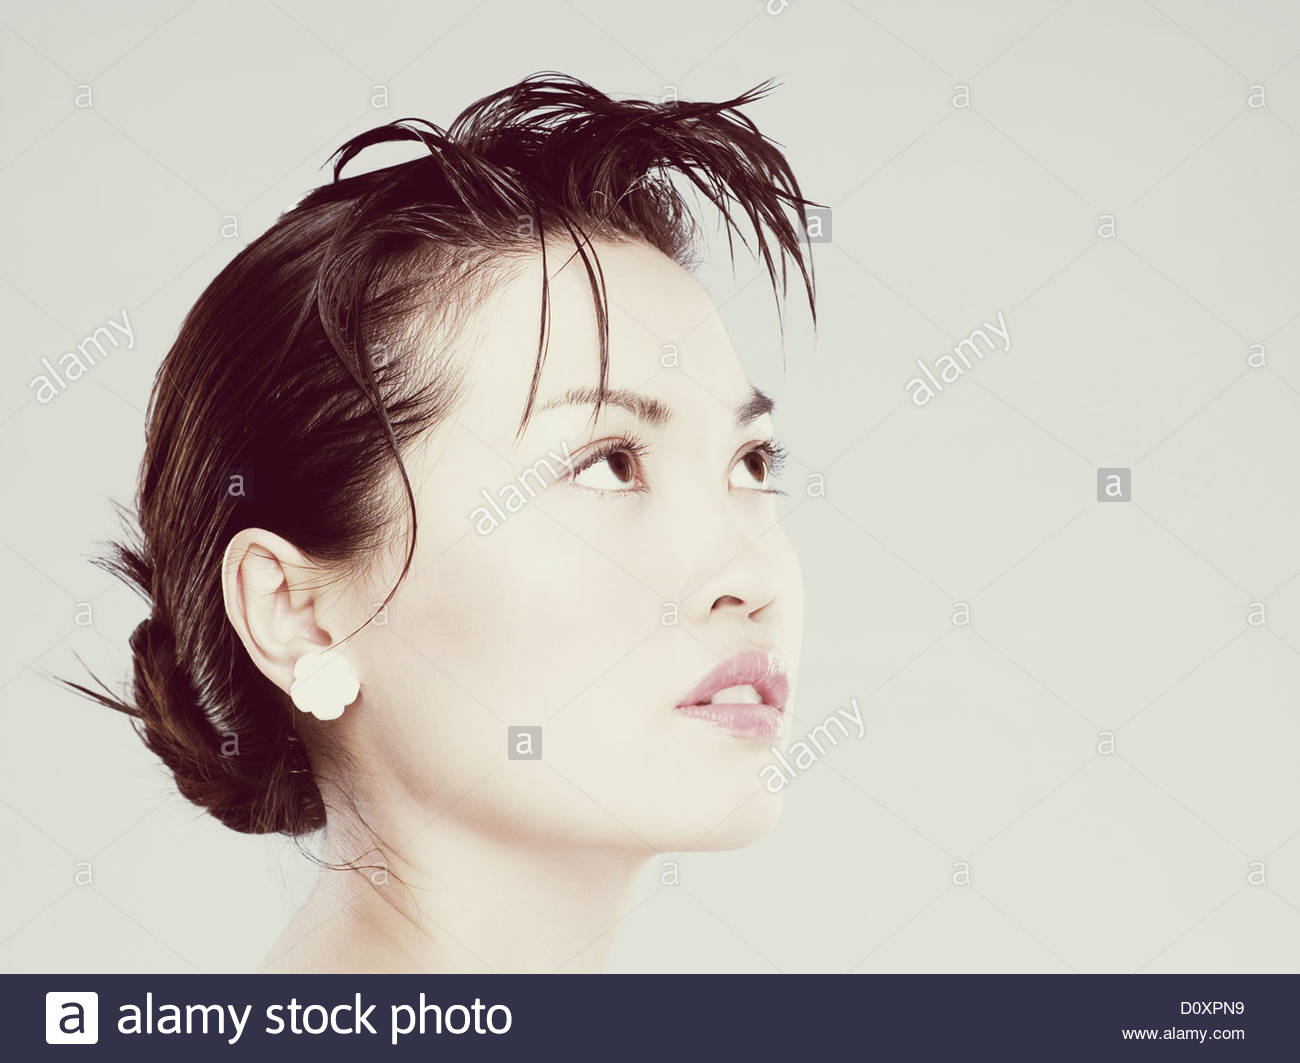 Young woman looking up Photo Stock